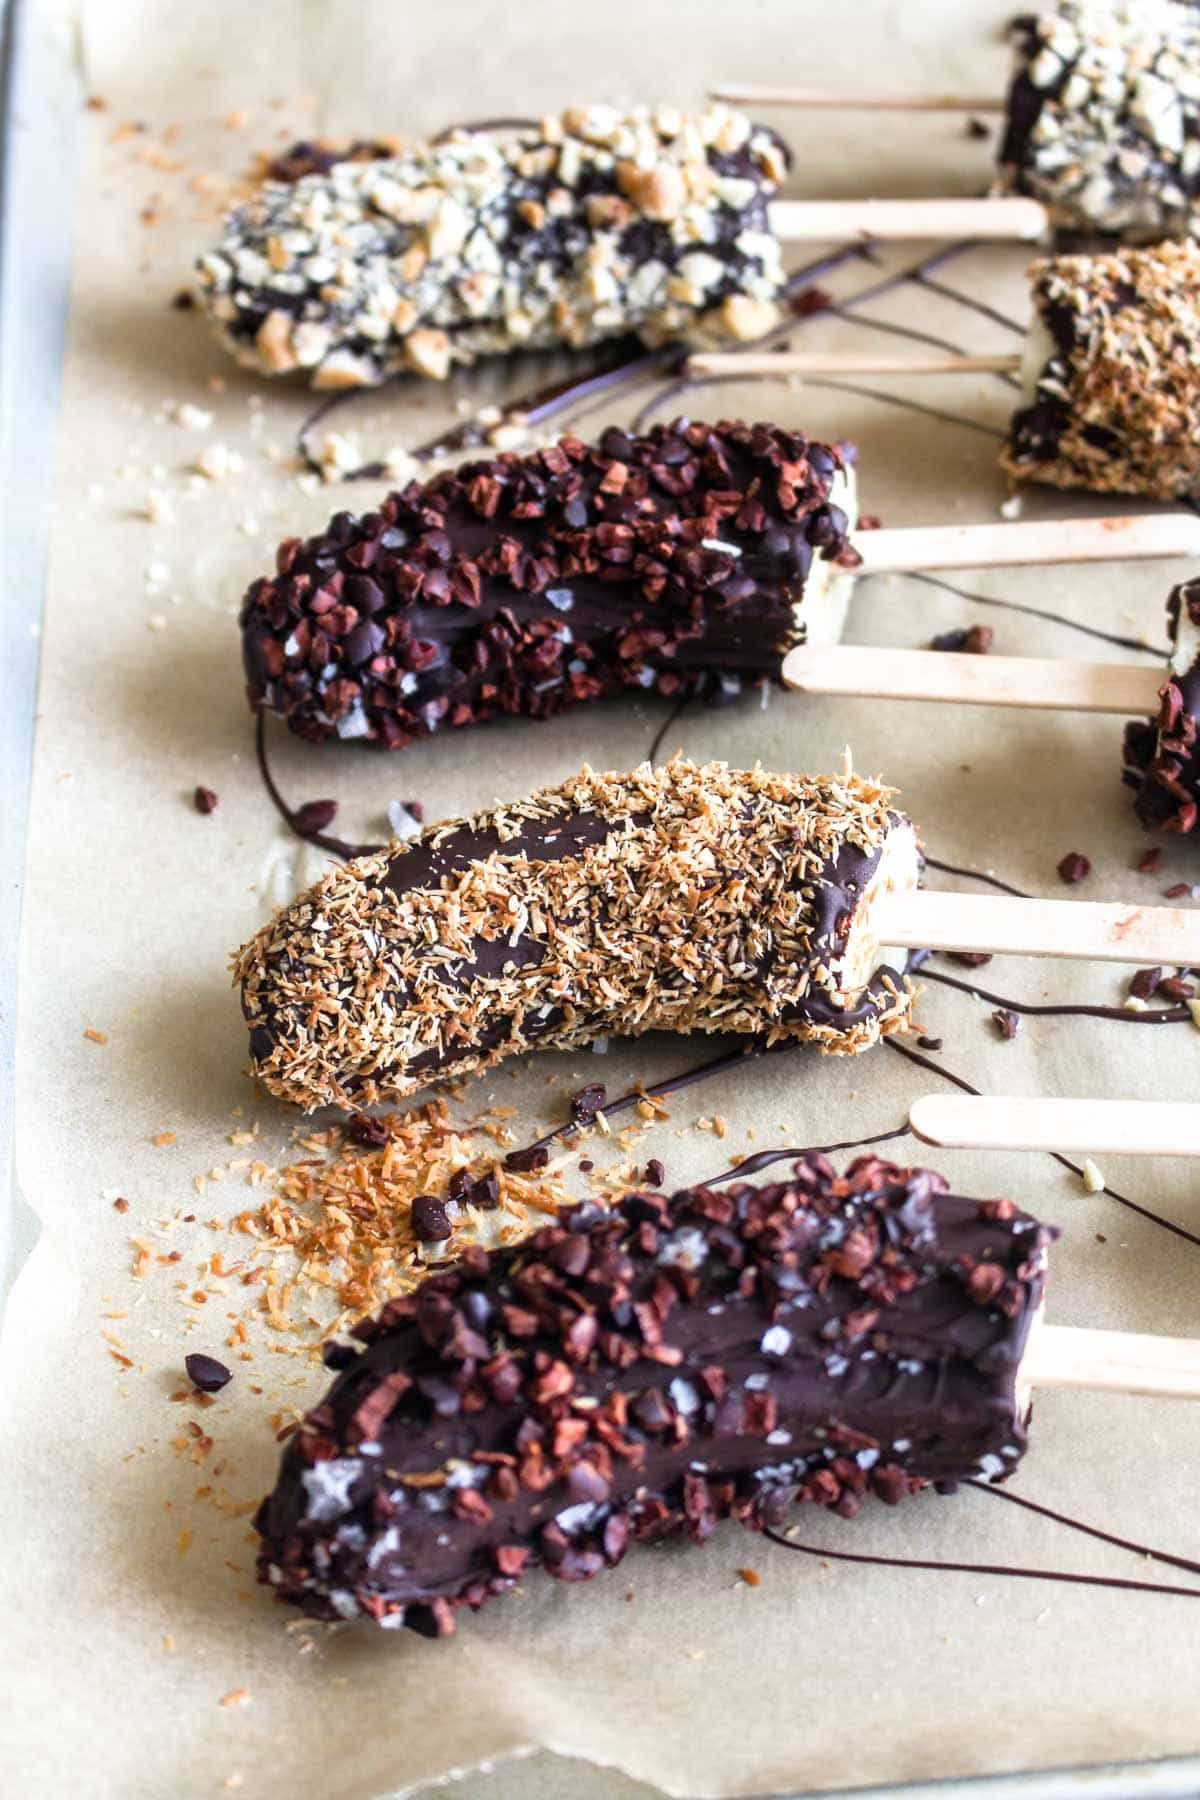 Chocolate Covered Banana Popsicles are a healthy no bake dessert! These fruit pops are covered in luscious chocolate and coated in crunchy toppings for the ultimate gluten free and vegan treat! | CatchingSeeds.com